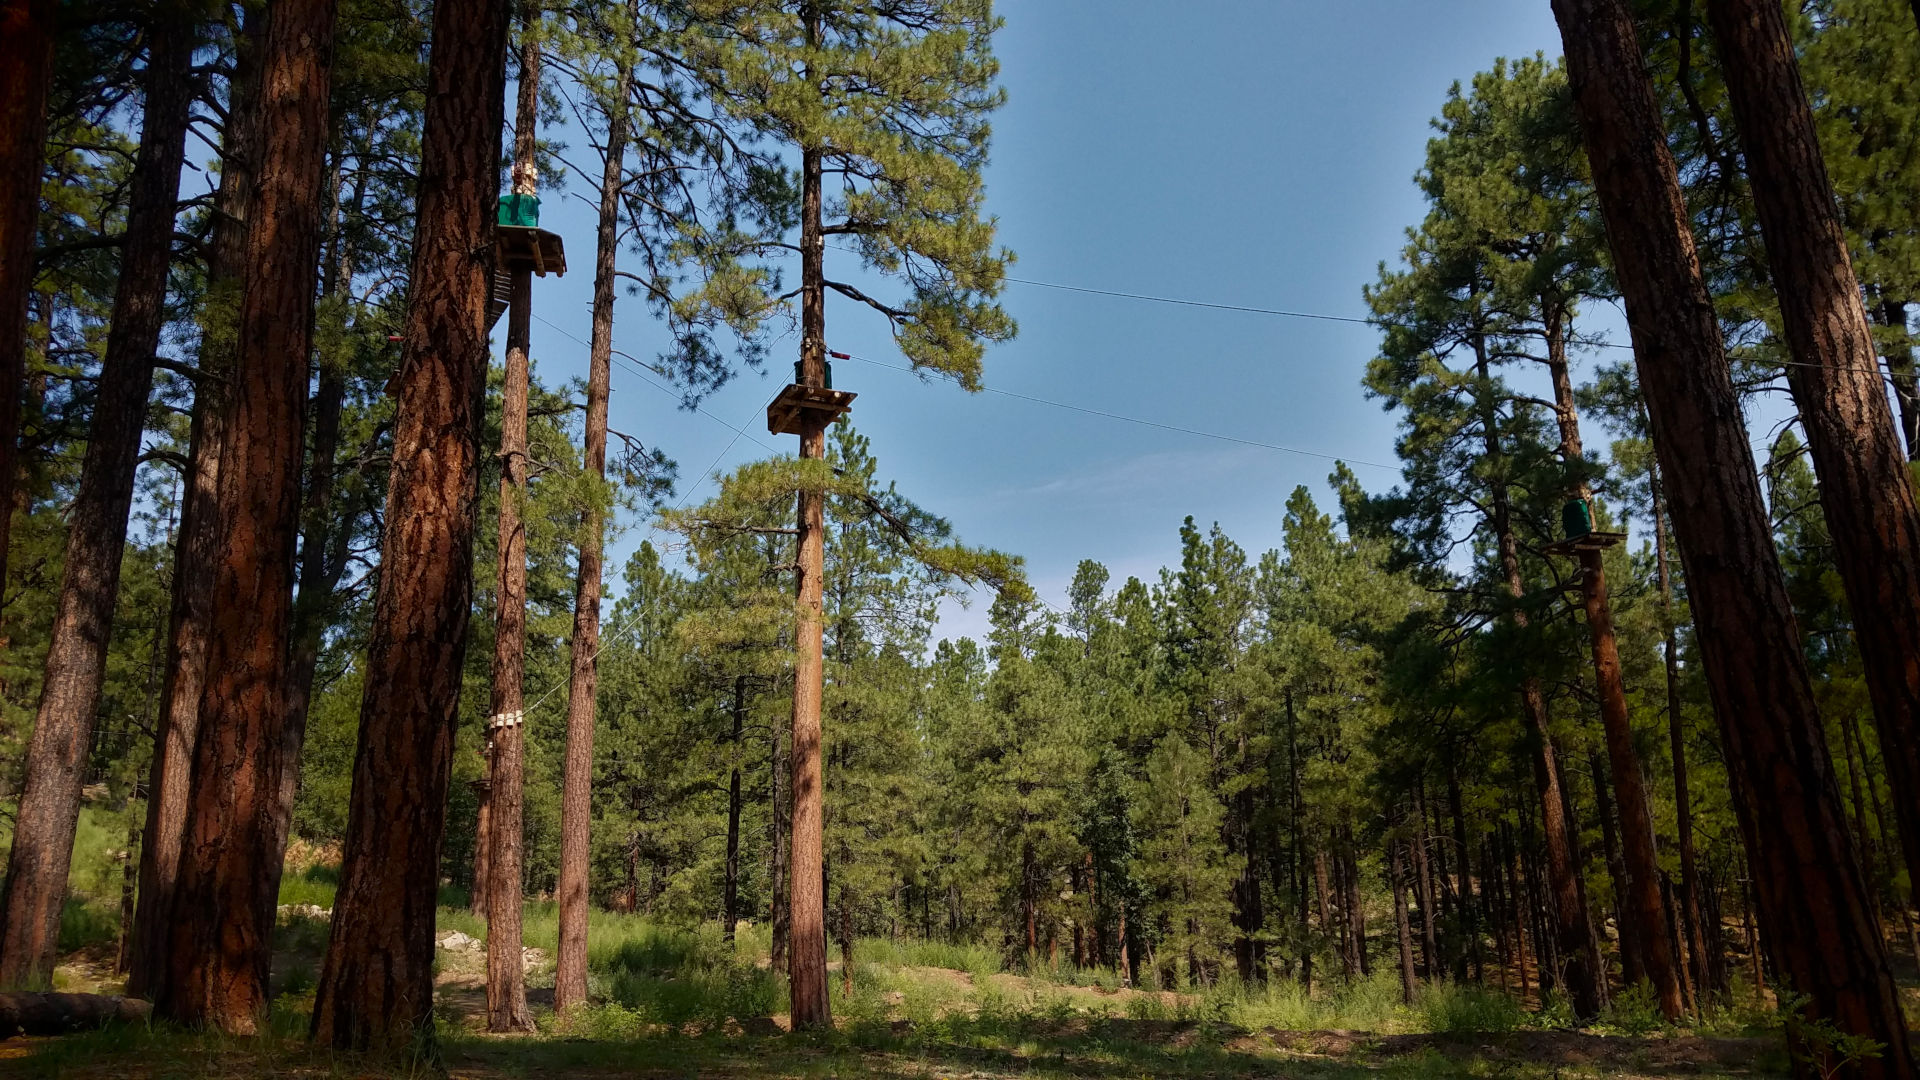 5 Tips for Arizona Zip Line Adventure tree stands